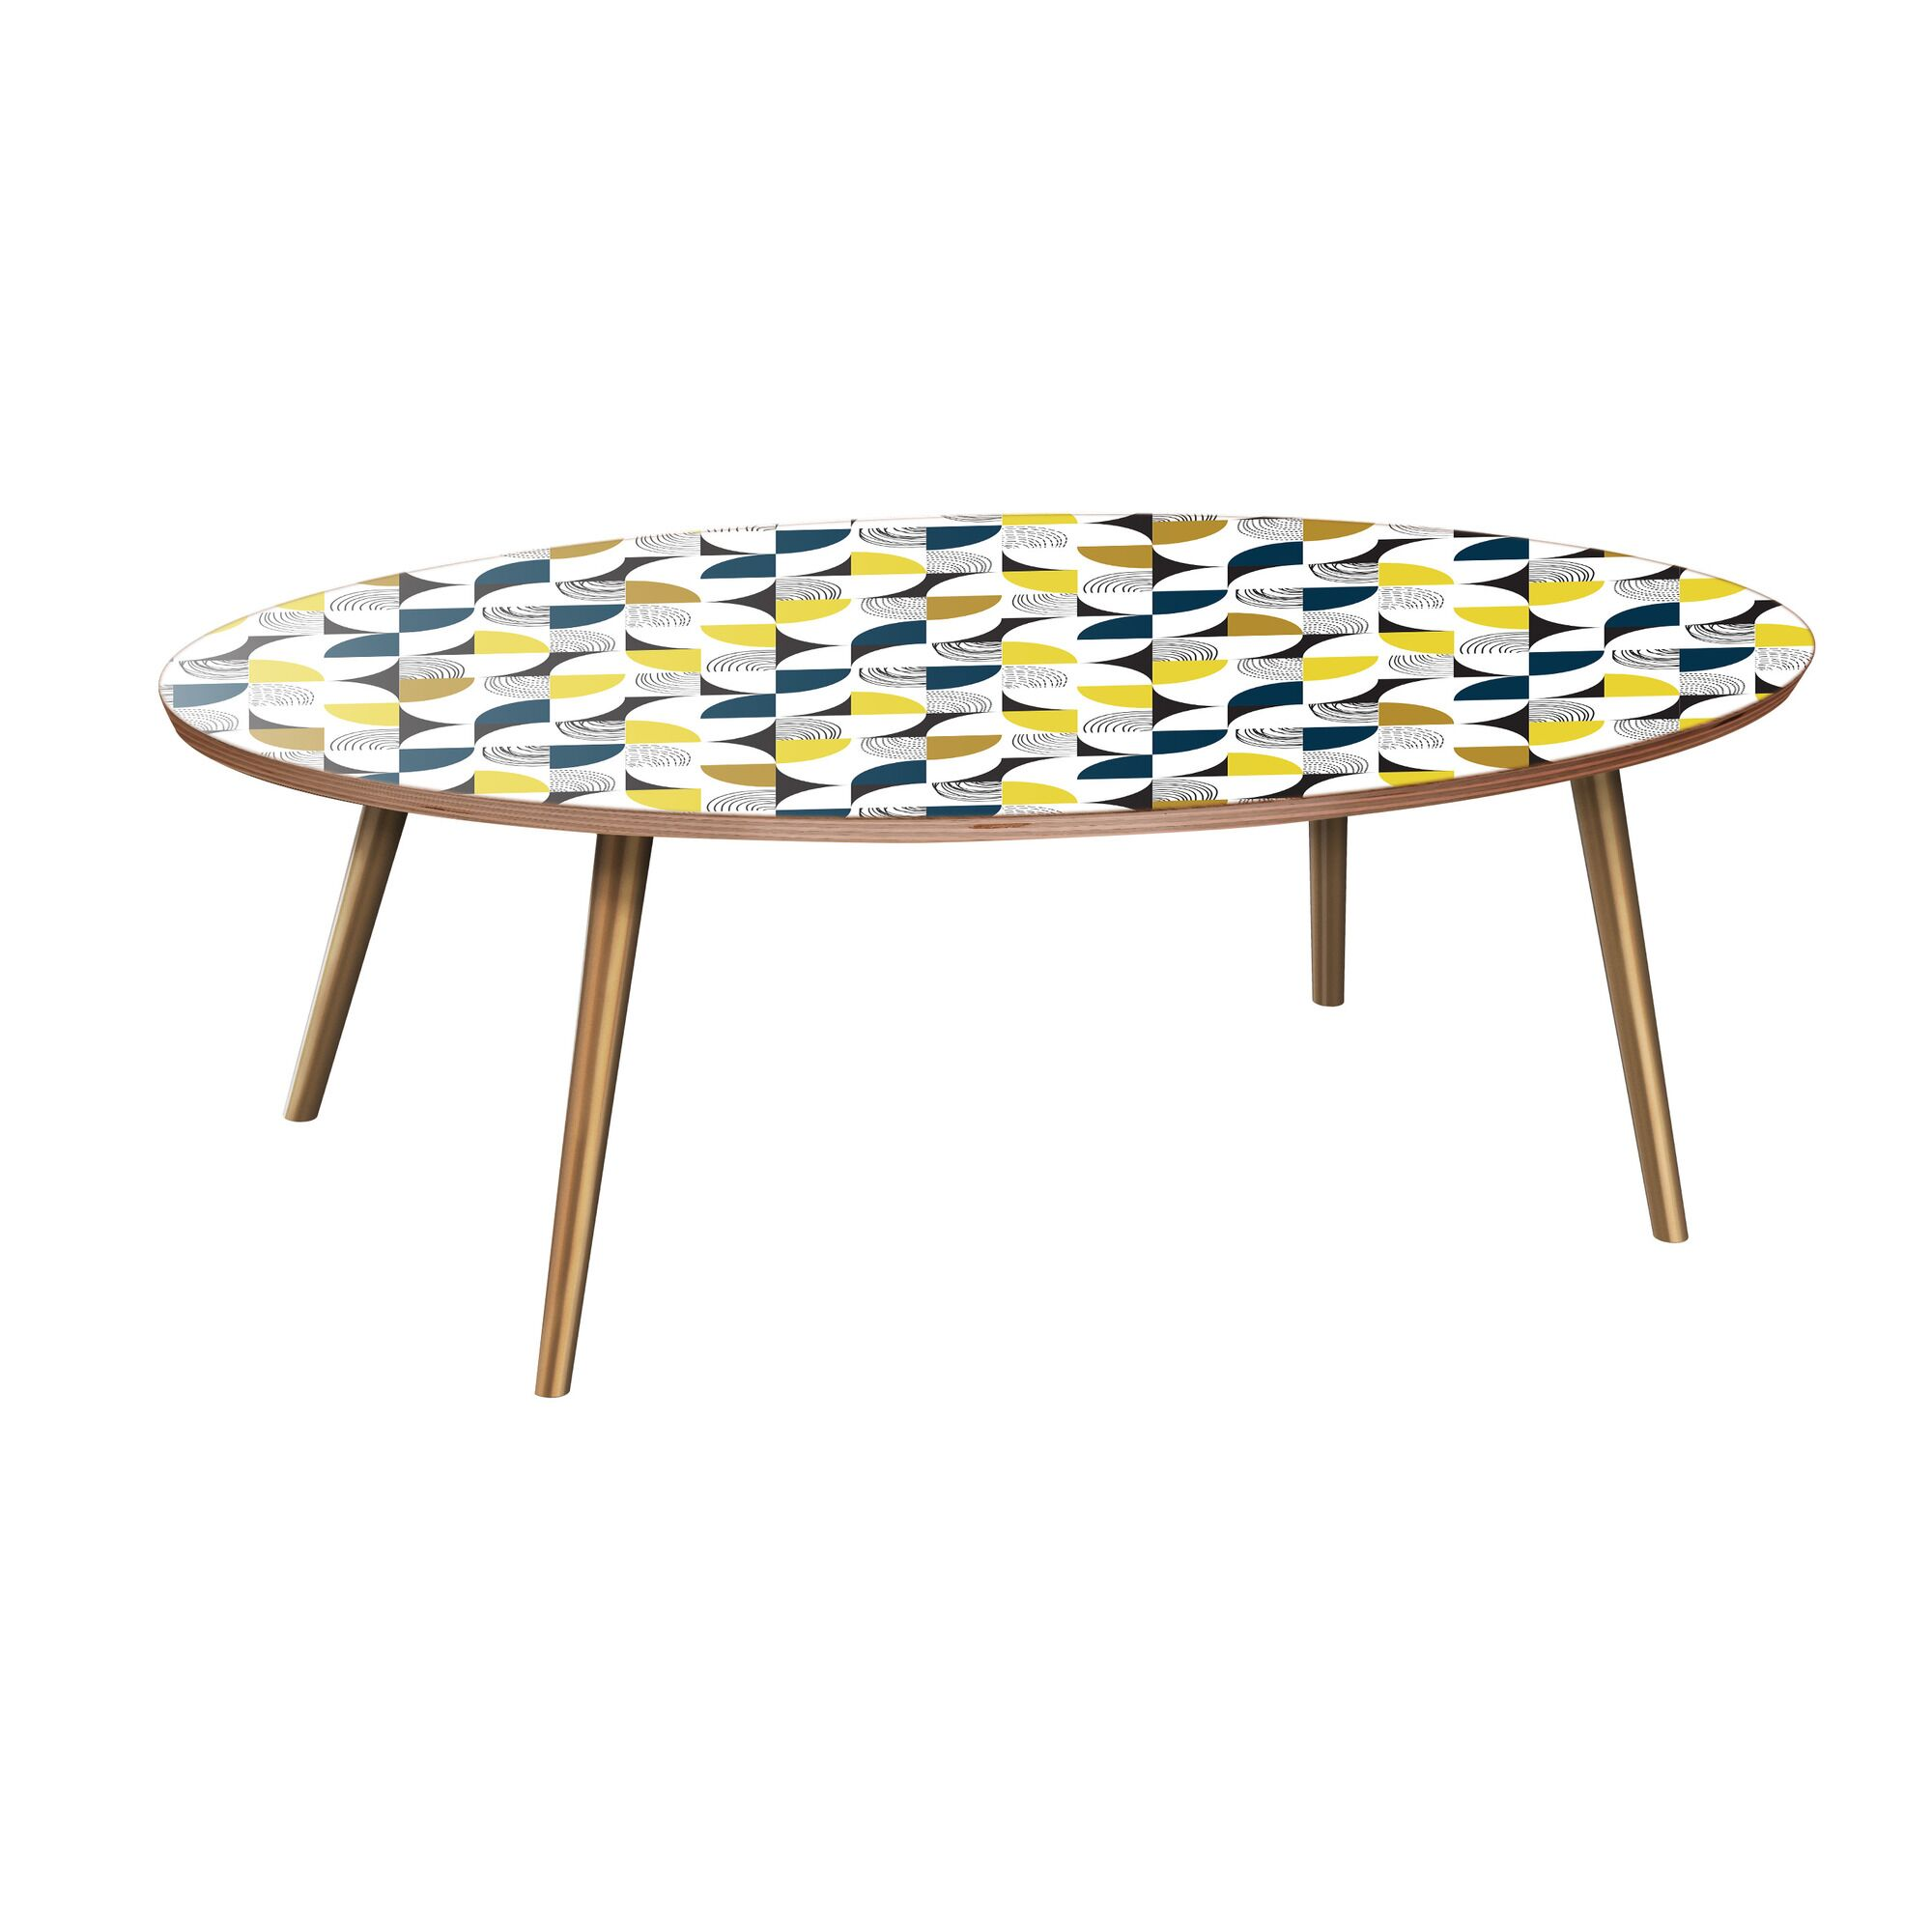 Kingsville Coffee Table Table Base Color: Brass, Table Top Color: Walnut